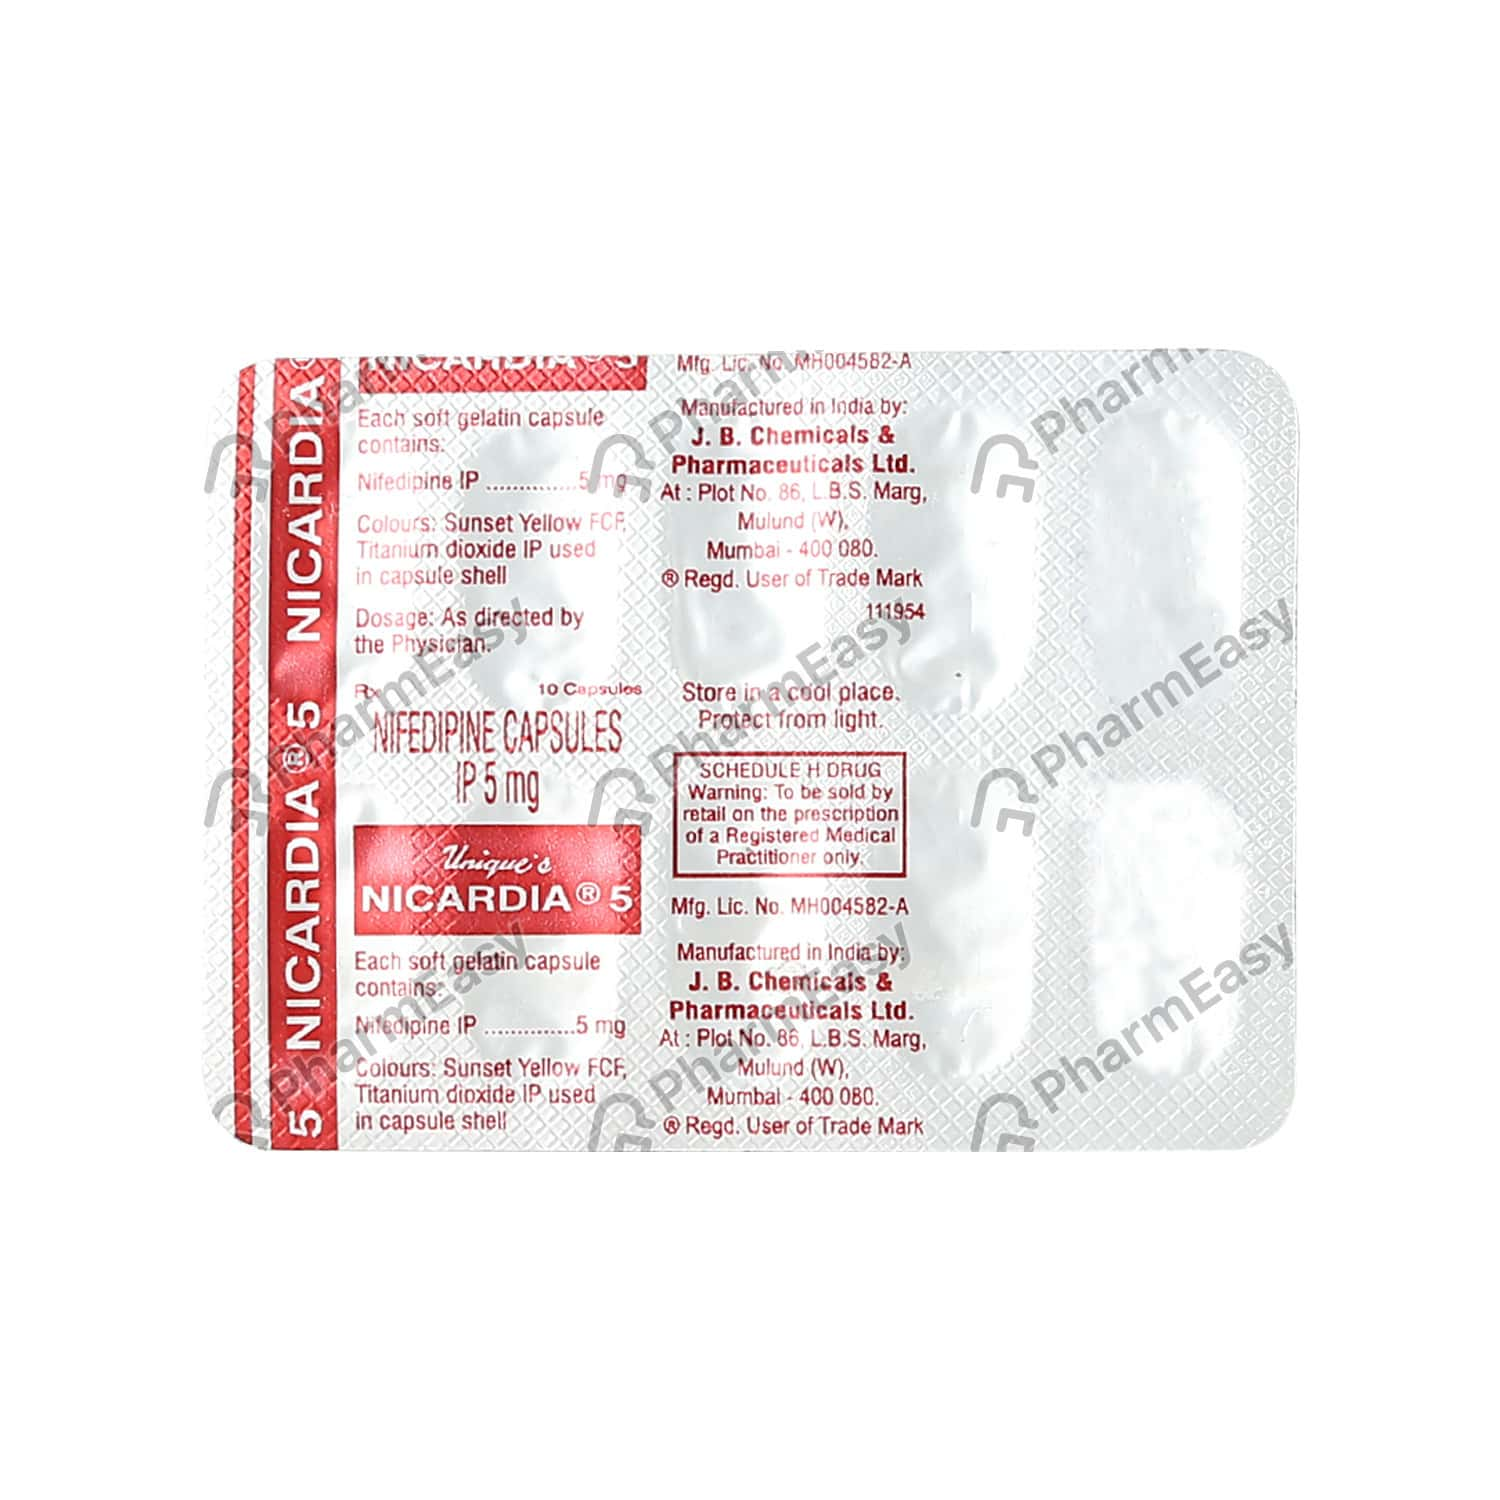 Nicardia 5mg Strip Of 10 Capsules